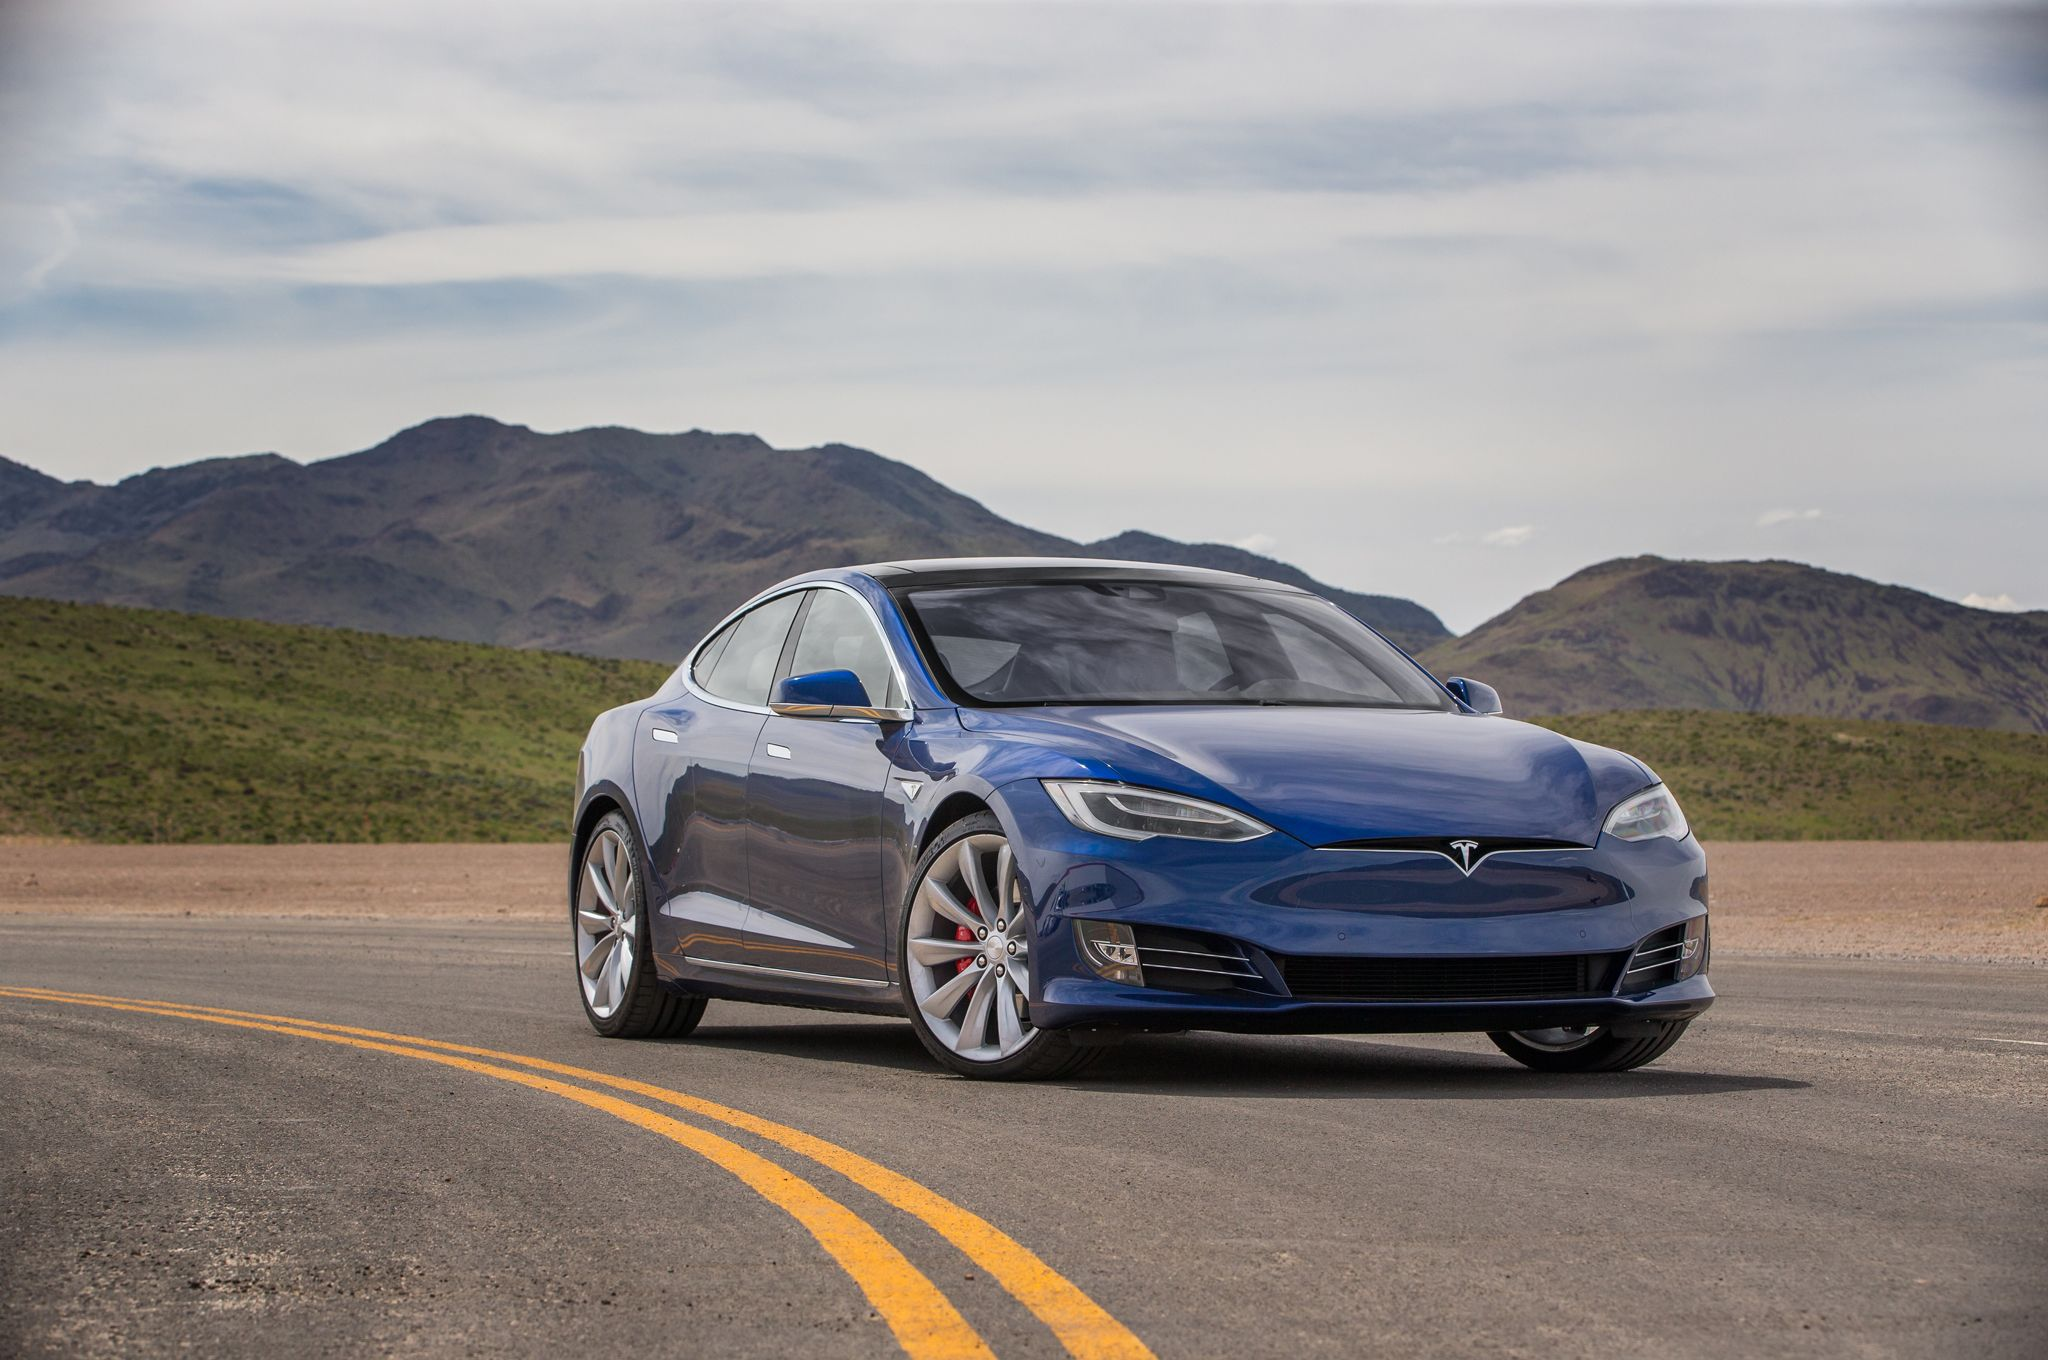 Read motor trend s tesla model s review to get the latest information on models prices